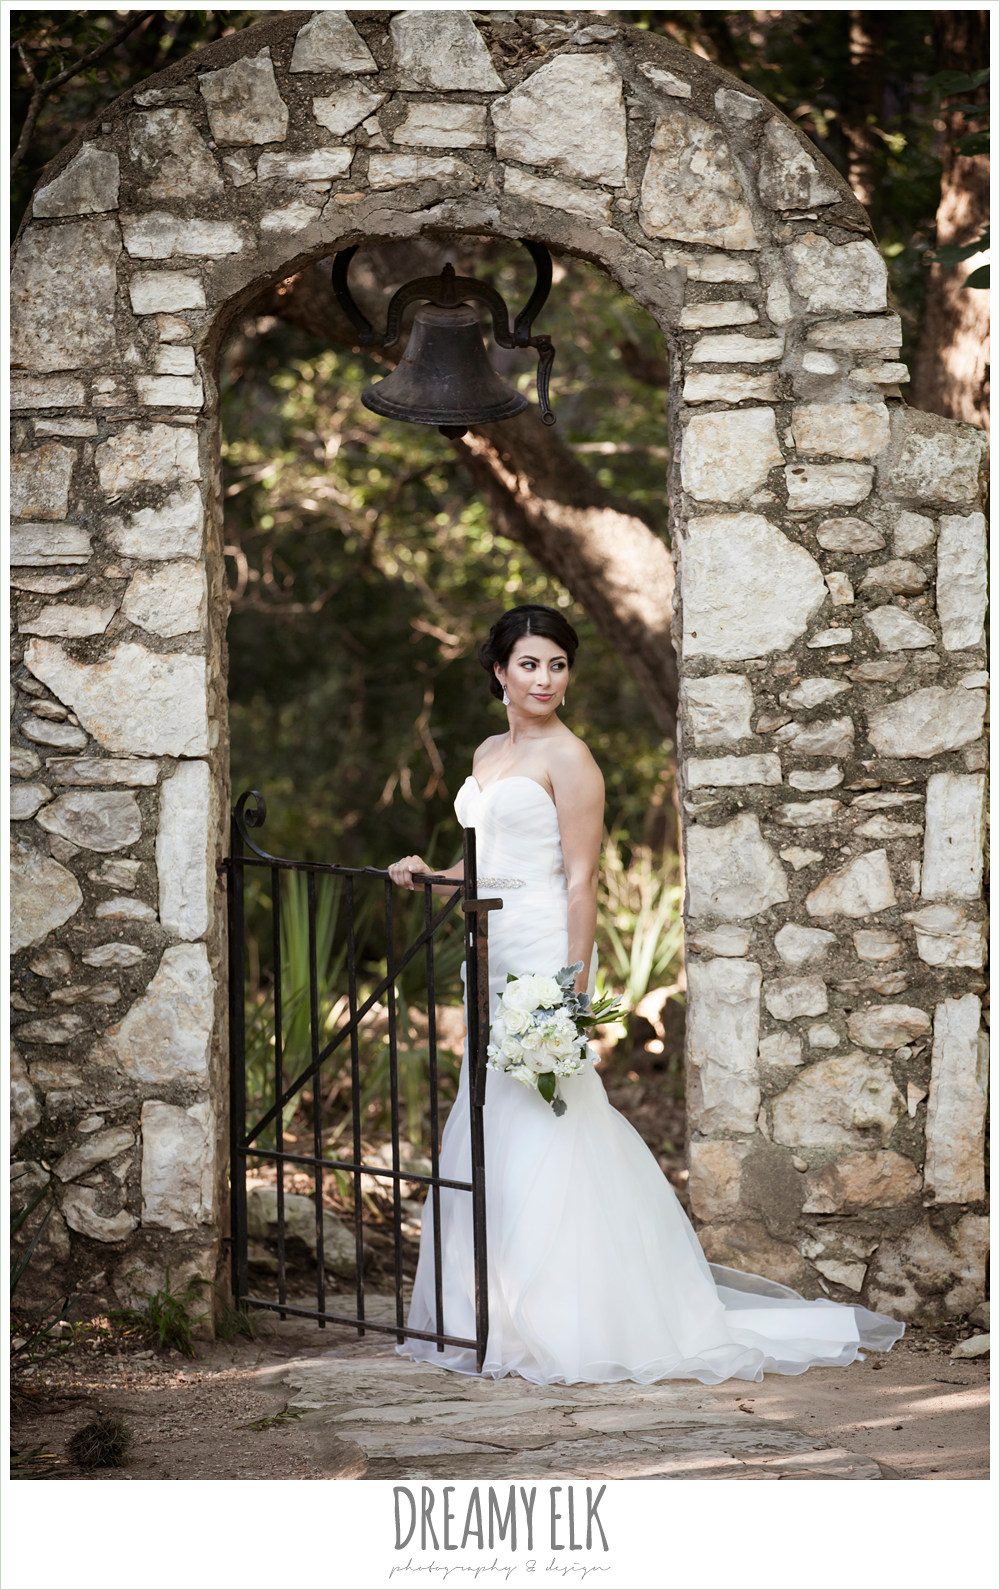 stone archway, strapless wedding dress, summer bridal photo, mayfield park, austin, texas {dreamy elk photography and design}